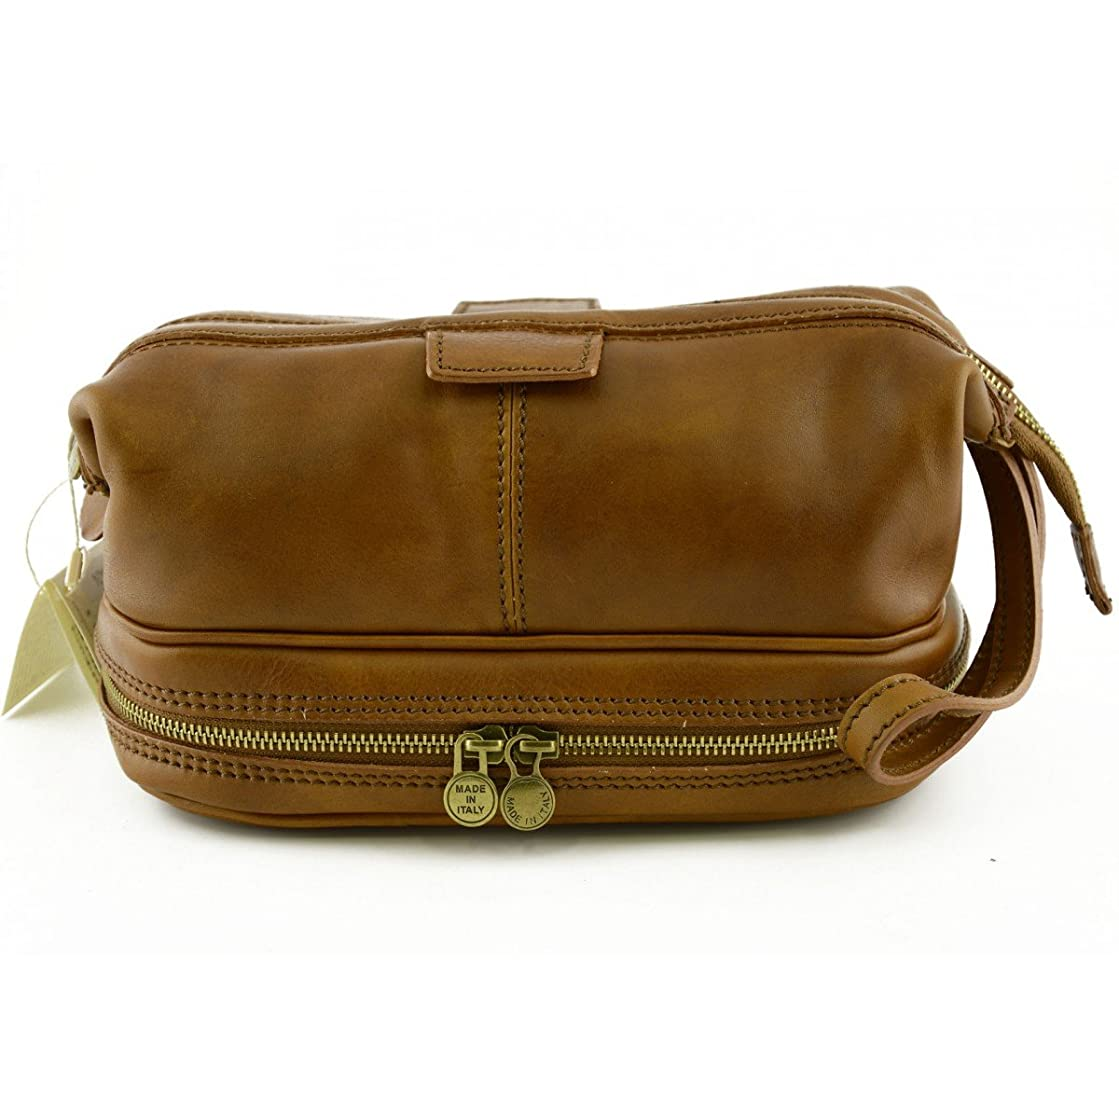 傾向がありますライブ評議会Made In Italy Vegetable Tanned Leather Wash Bag With Double Bottom Color Tan - Prestige Line